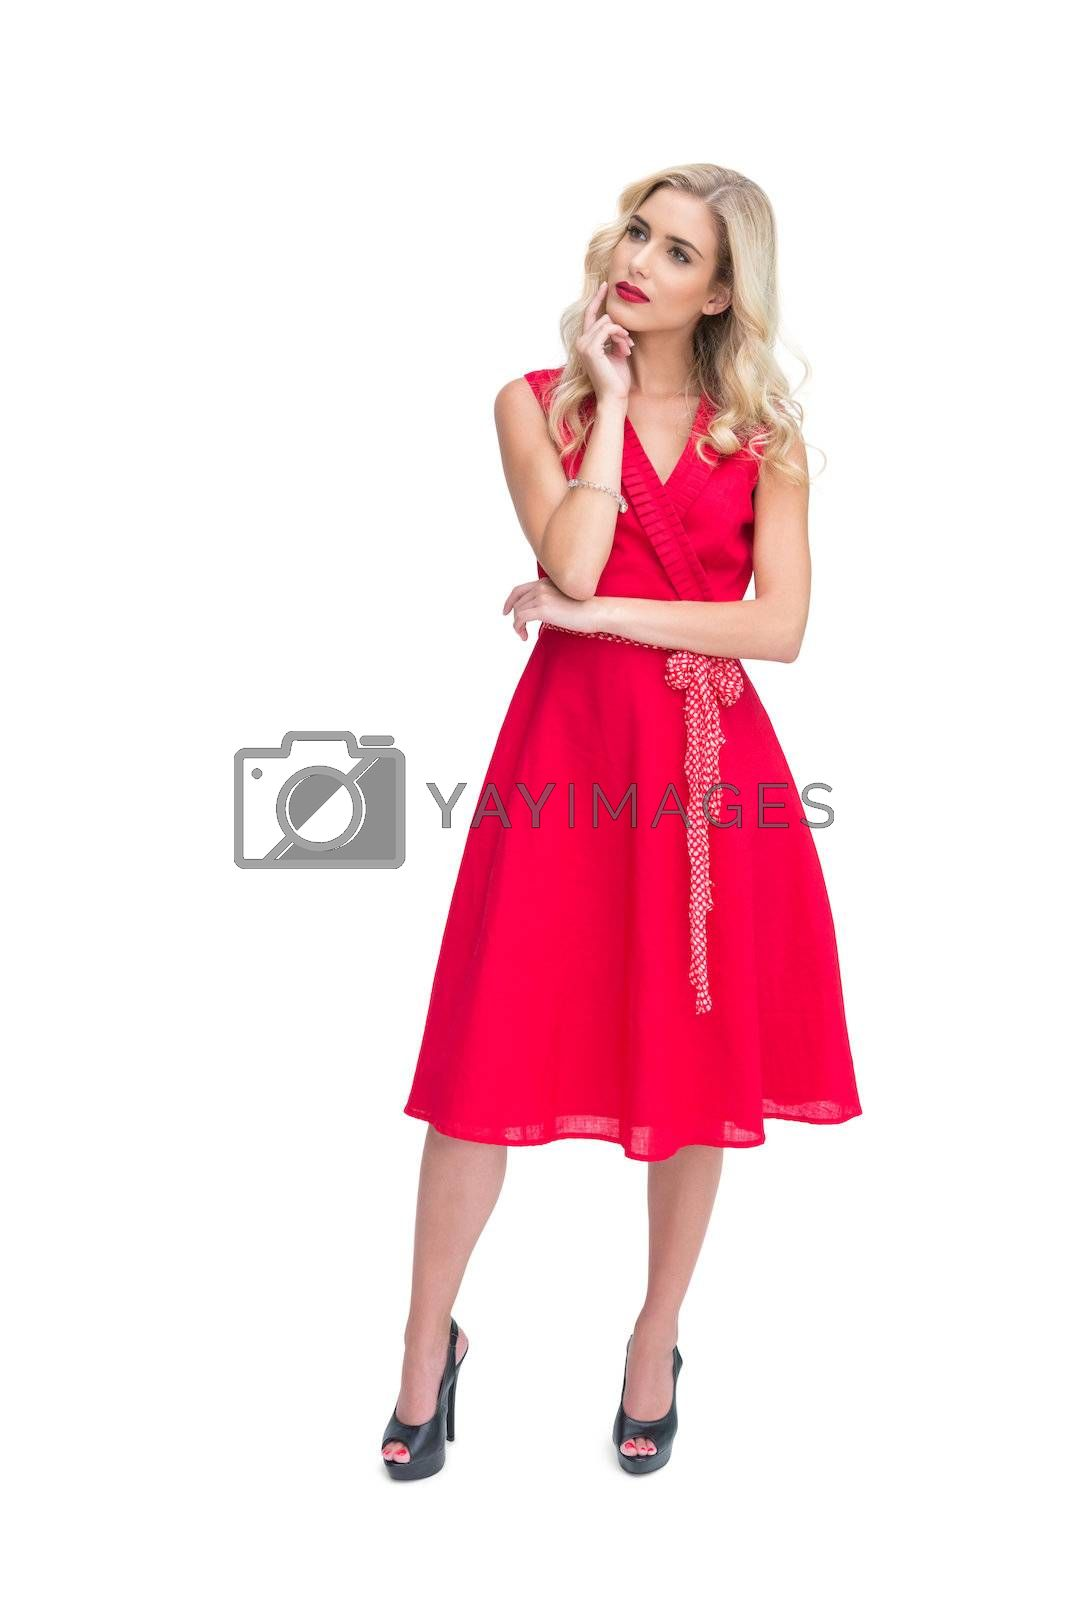 Thoughtful woman posing in red dress  by Wavebreakmedia